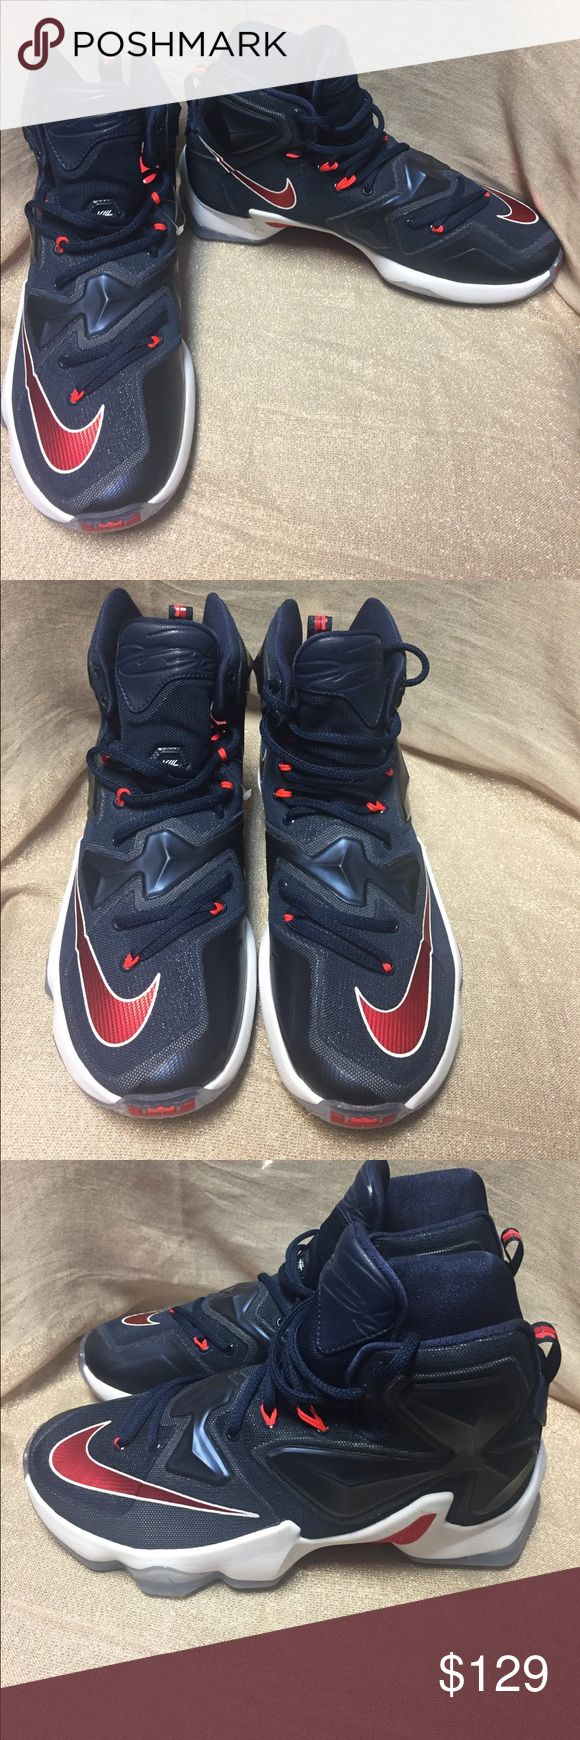 """NEW! Men's Lebron James 13 Basketball Sneakers 2016 Nike Lebron 13 Mens Basketball Shoes""""USA Independence Day""""Midnight Navy/Varsity Red-White Sneakers 807219-461 **Inventory number on sole** Fresh pair of Lebron James Basketball Sneakers! Great condition! Never worn. NEW! Makes a great gift ! Men and boys favorite ! Make an offer! Make it yours! No box no flaws Lebron James Shoes Athletic Shoes"""